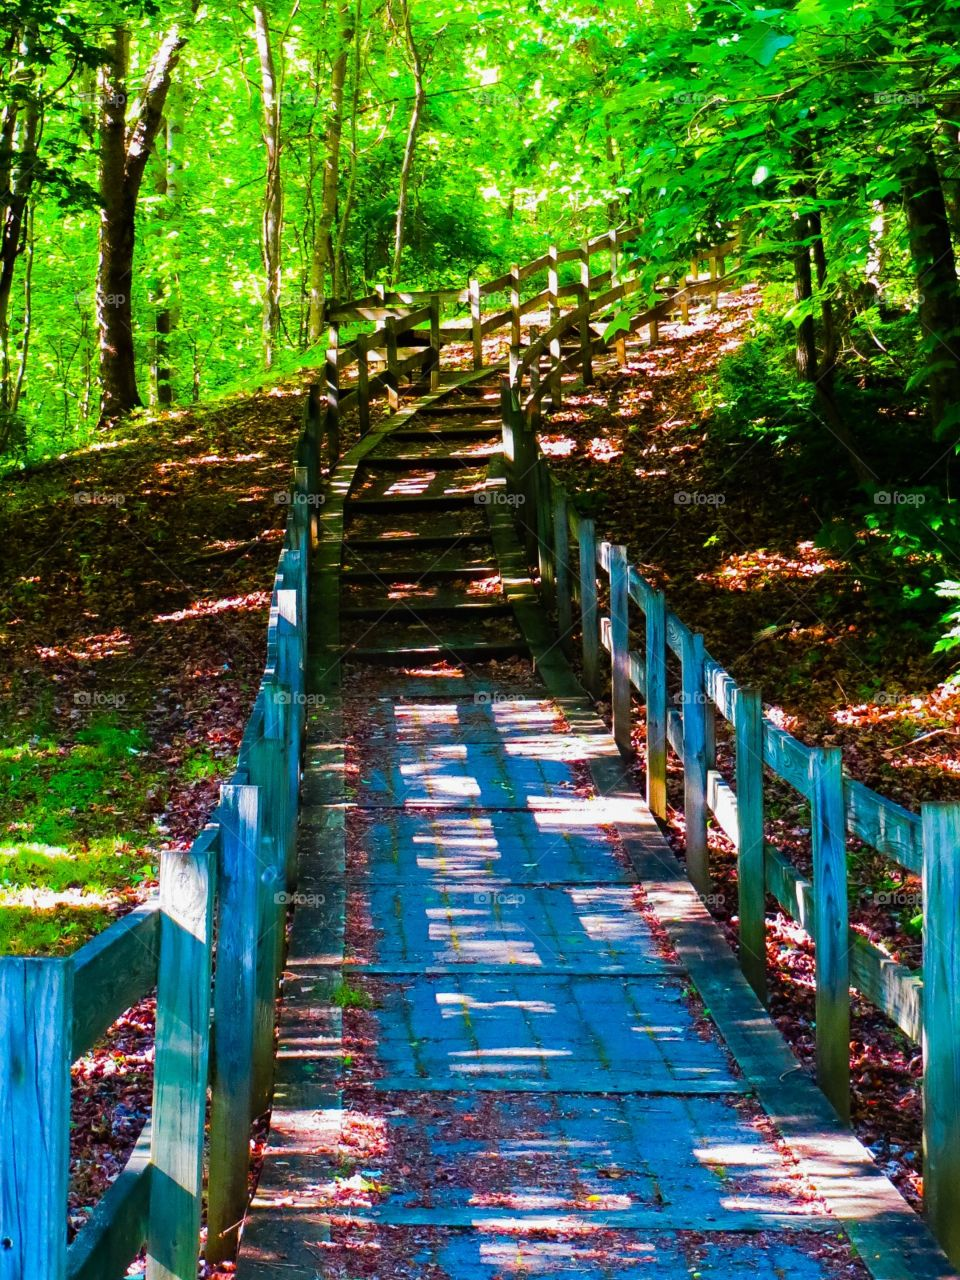 Upward Bound Trail. Hiking to the sky into a verdant forest on a upward bound trail on a summer day